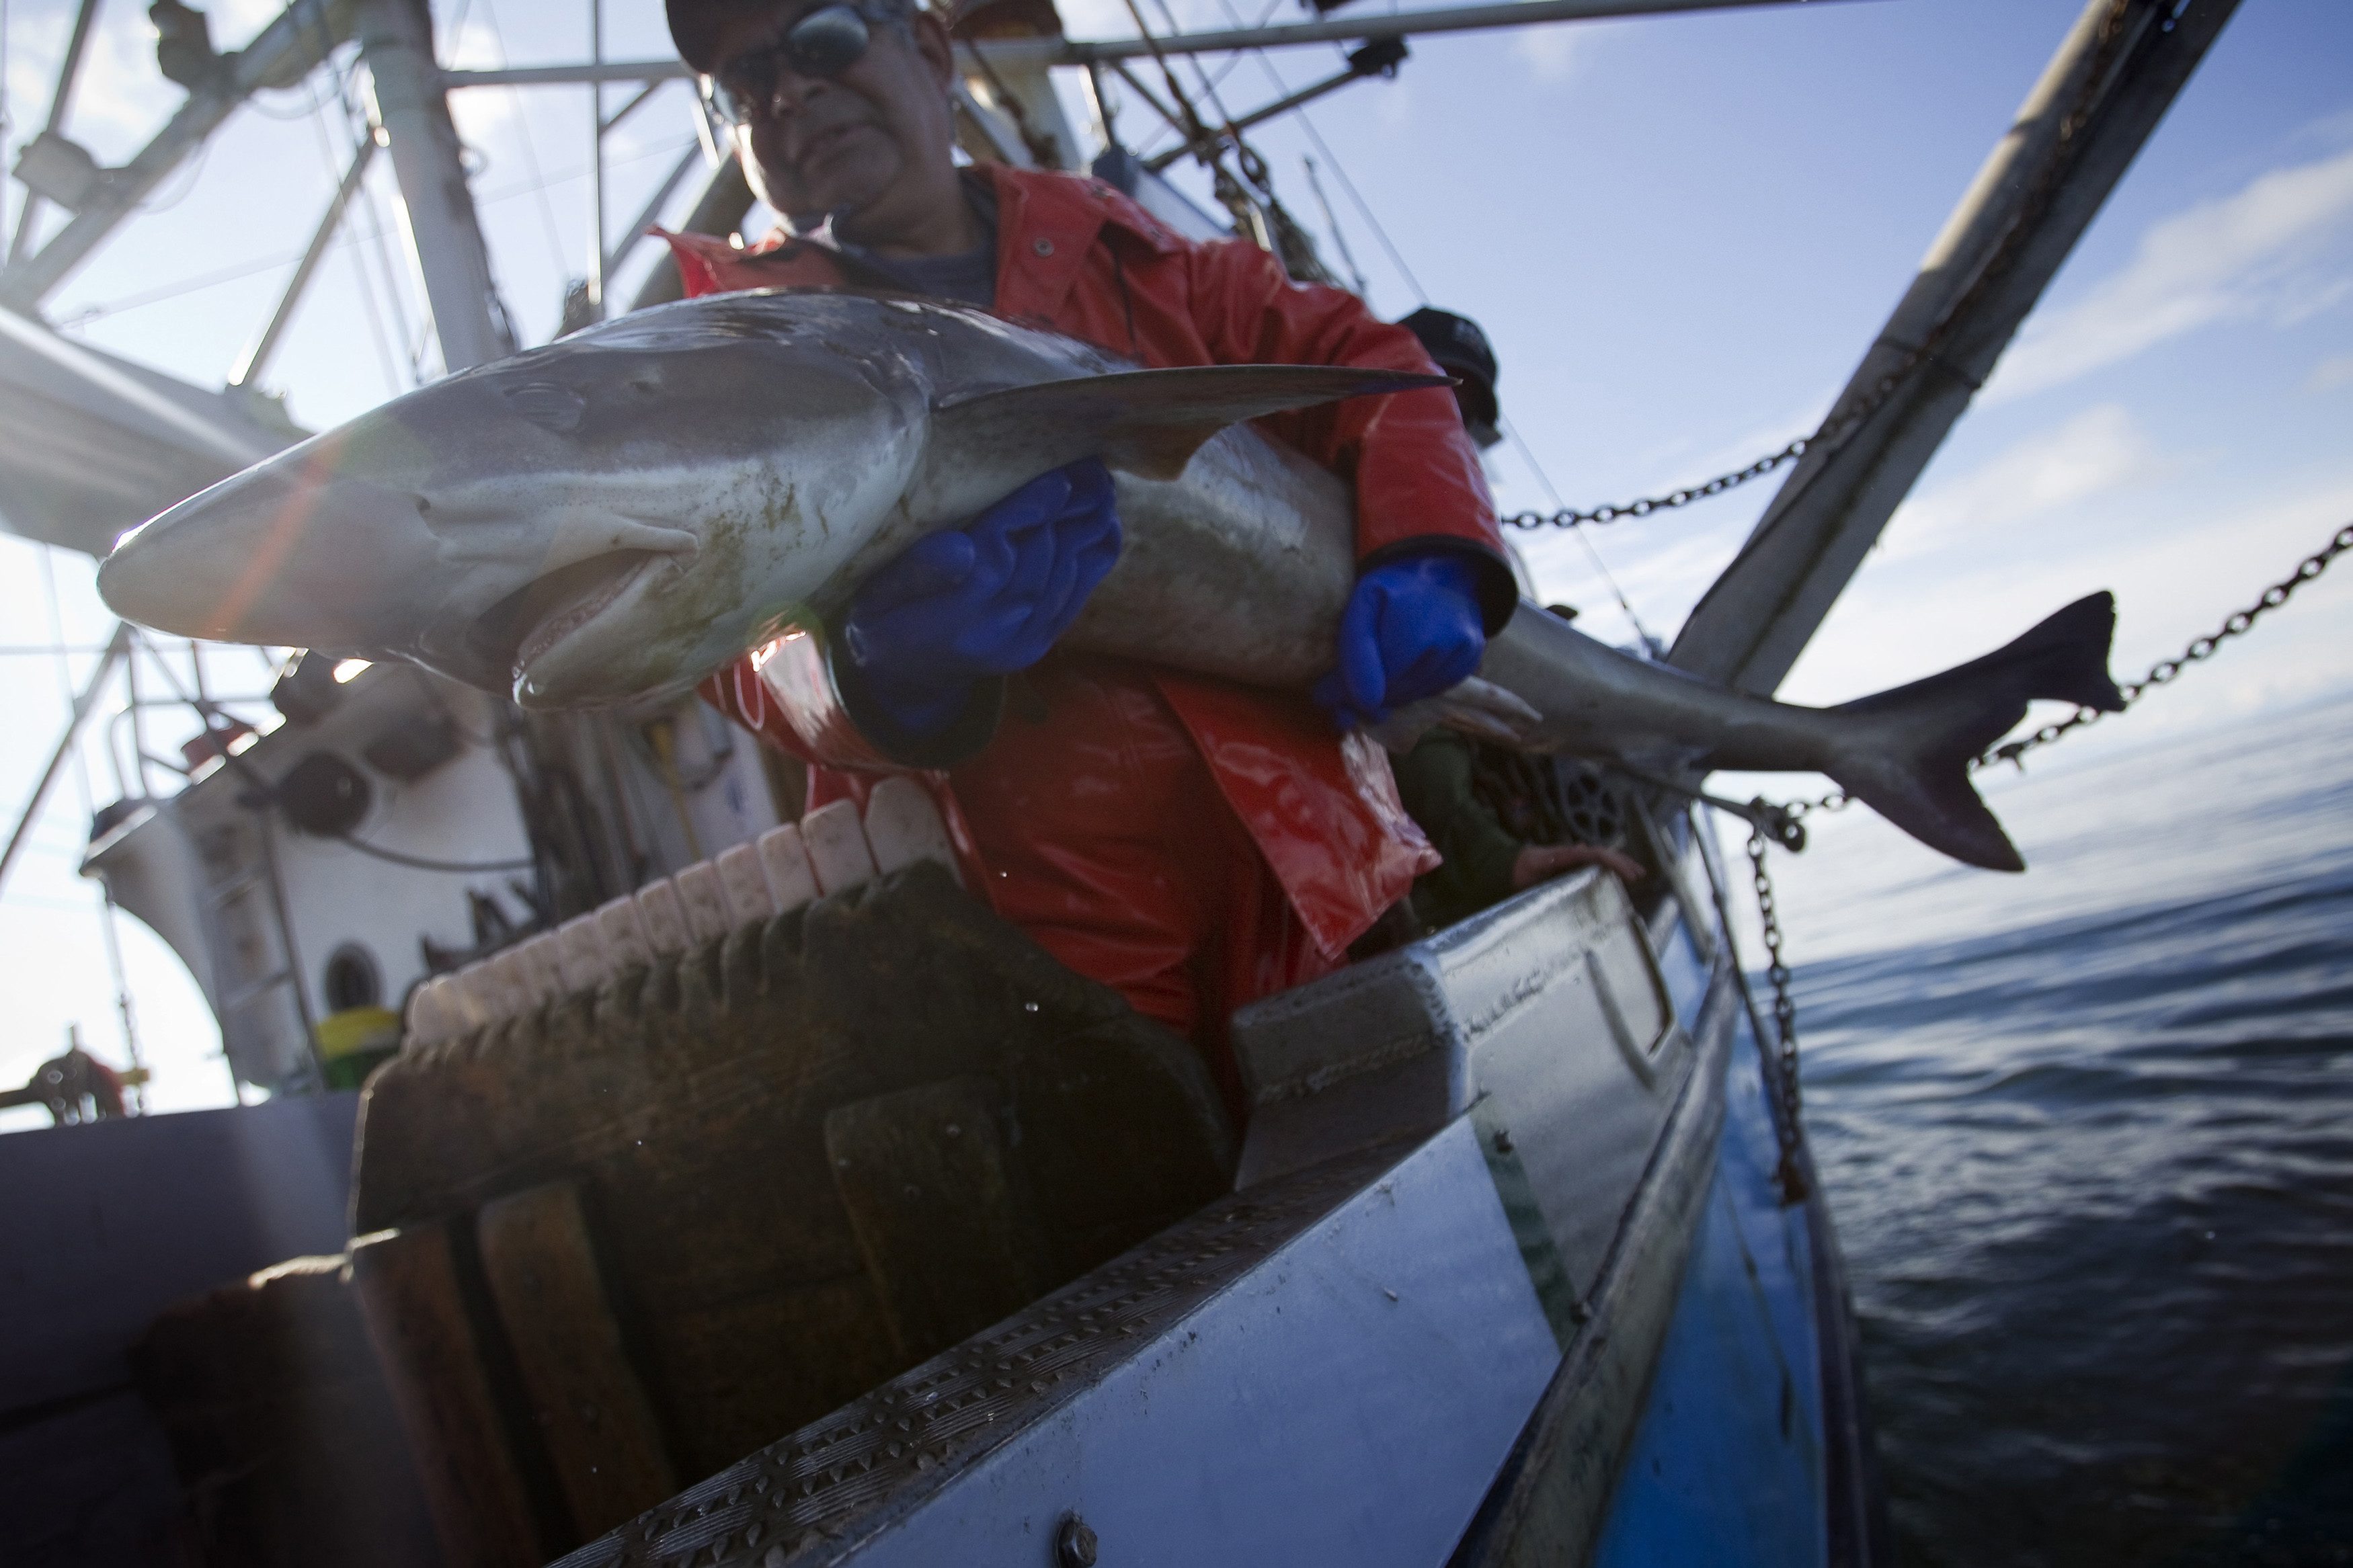 Jon Planes holds a large soupfin shark aboard the Ocean Sunset in the Pacific Ocean off of Ucluelet, British Columbia June 24, 2012. The Ocean Sunset is a commercial fishing boat that hunts sharks as well as other fish for their meat and fins. After the fishermen catch them, dogfish sharks are sent to a processing plant, the fins are removed and the body is skinned. The bellies are exported to Germany to be smoked for pub food, and the fins are sent to Asia, where they are used in shark fin soup - a delicacy in Chinese culture. Animal rights advocates criticise the shark fin harvest but others say that eating shark fins is an old cultural tradition. Picture taken June 24, 2012 REUTERS/Ben Nelms (CANADA - Tags: ENVIRONMENT ANIMALS FOOD SOCIETY TPX IMAGES OF THE DAY)ATTENTION EDITORS: PICTURE 8 OF 22 FOR PACKAGE 'CANADA'S SHARK FIN SOUP'Search 'shark fin' for all images - GM1E8C618KX01